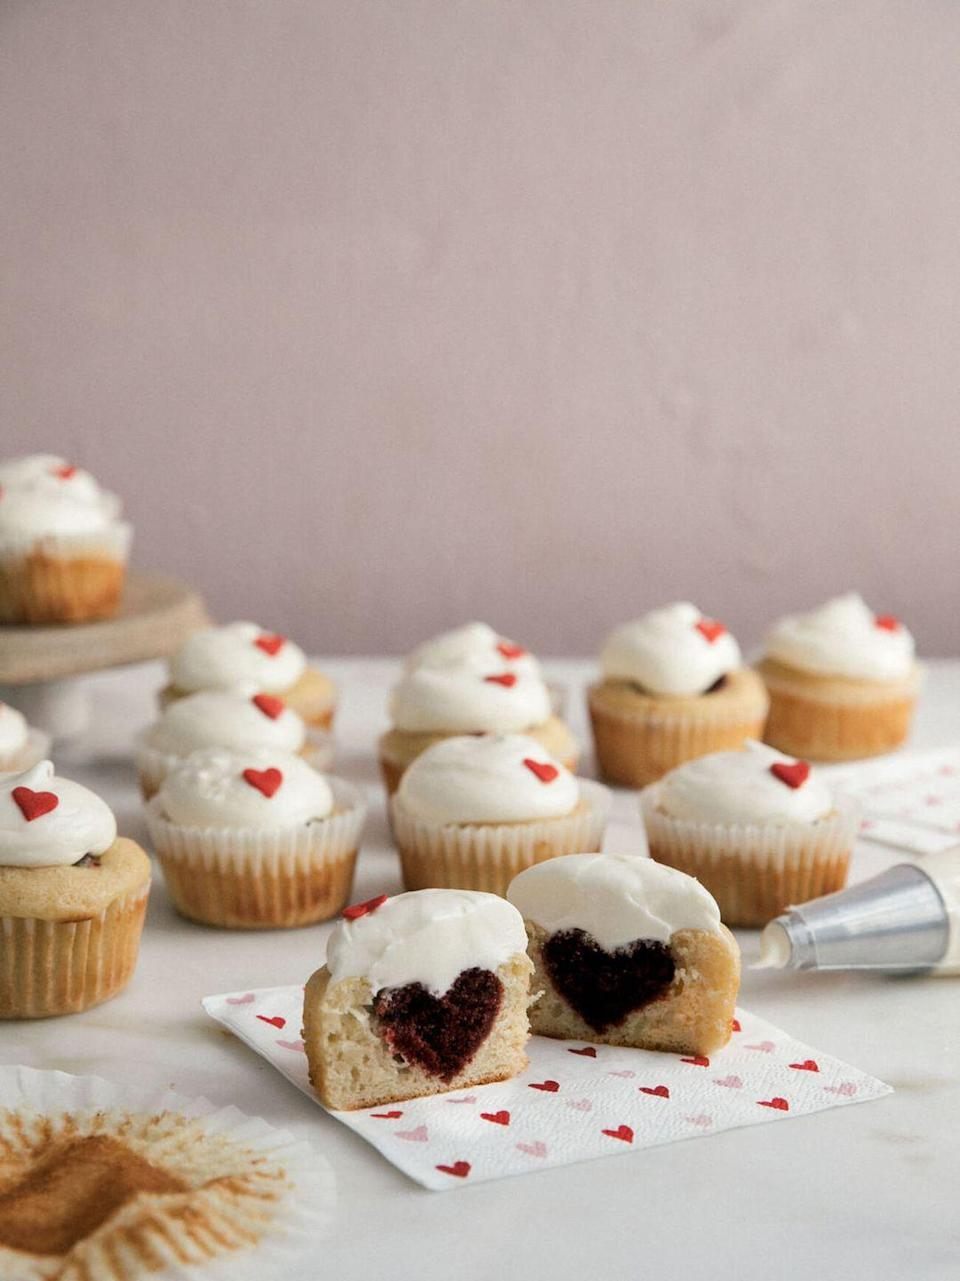 "<p>There's a sneaky red velvet heart hiding in these fluffy vanilla cupcakes that are topped with a sweet buttercream frosting.</p><p><strong>Get the recipe at <a href=""https://www.acozykitchen.com/red-velvet-heart-surprise-cupcakes"" rel=""nofollow noopener"" target=""_blank"" data-ylk=""slk:A Cozy Kitchen"" class=""link rapid-noclick-resp"">A Cozy Kitchen</a>.</strong></p><p><strong><a class=""link rapid-noclick-resp"" href=""https://www.amazon.com/Cuisinart-SM-50BC-5-5-Quart-Brushed-Chrome/dp/B01K2FQ4DE/?tag=syn-yahoo-20&ascsubtag=%5Bartid%7C10050.g.1138%5Bsrc%7Cyahoo-us"" rel=""nofollow noopener"" target=""_blank"" data-ylk=""slk:SHOP STAND MIXERS"">SHOP STAND MIXERS</a><br></strong></p>"